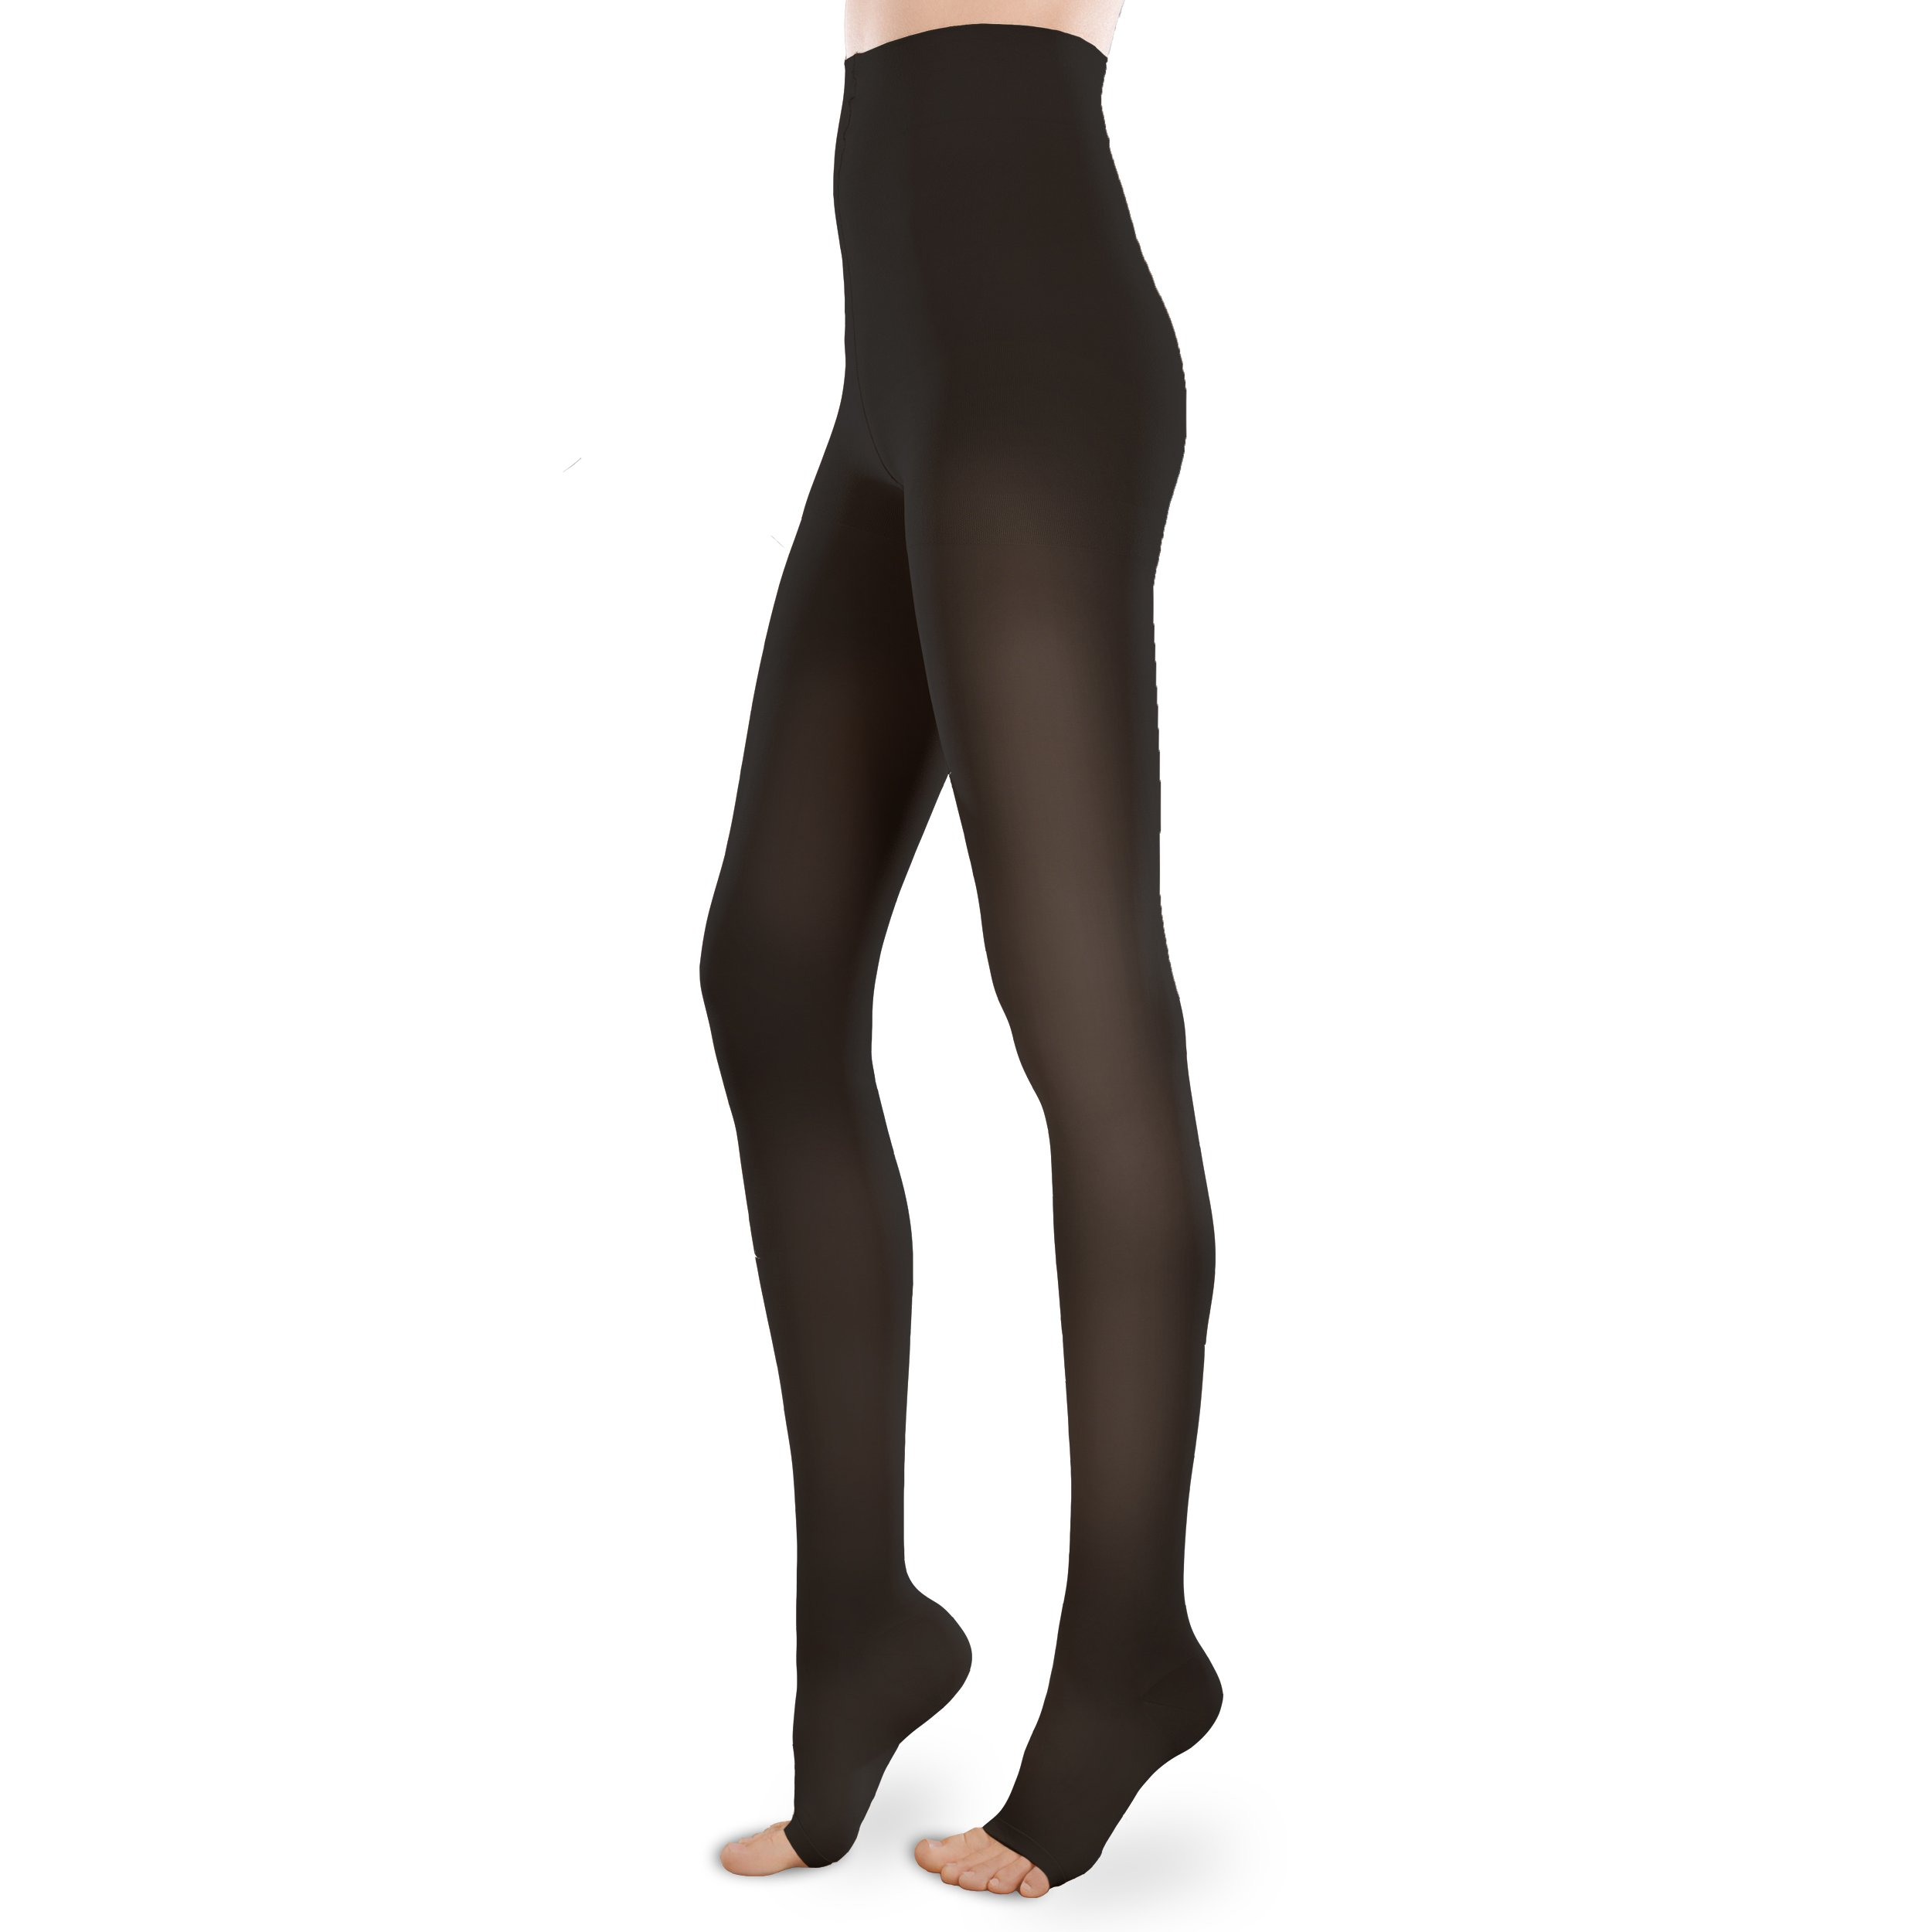 f2d4e2d978f Sheer Ease Women s Open-Toe Support Pantyhose - 30-40mmHg Firm Compression  Nylons (